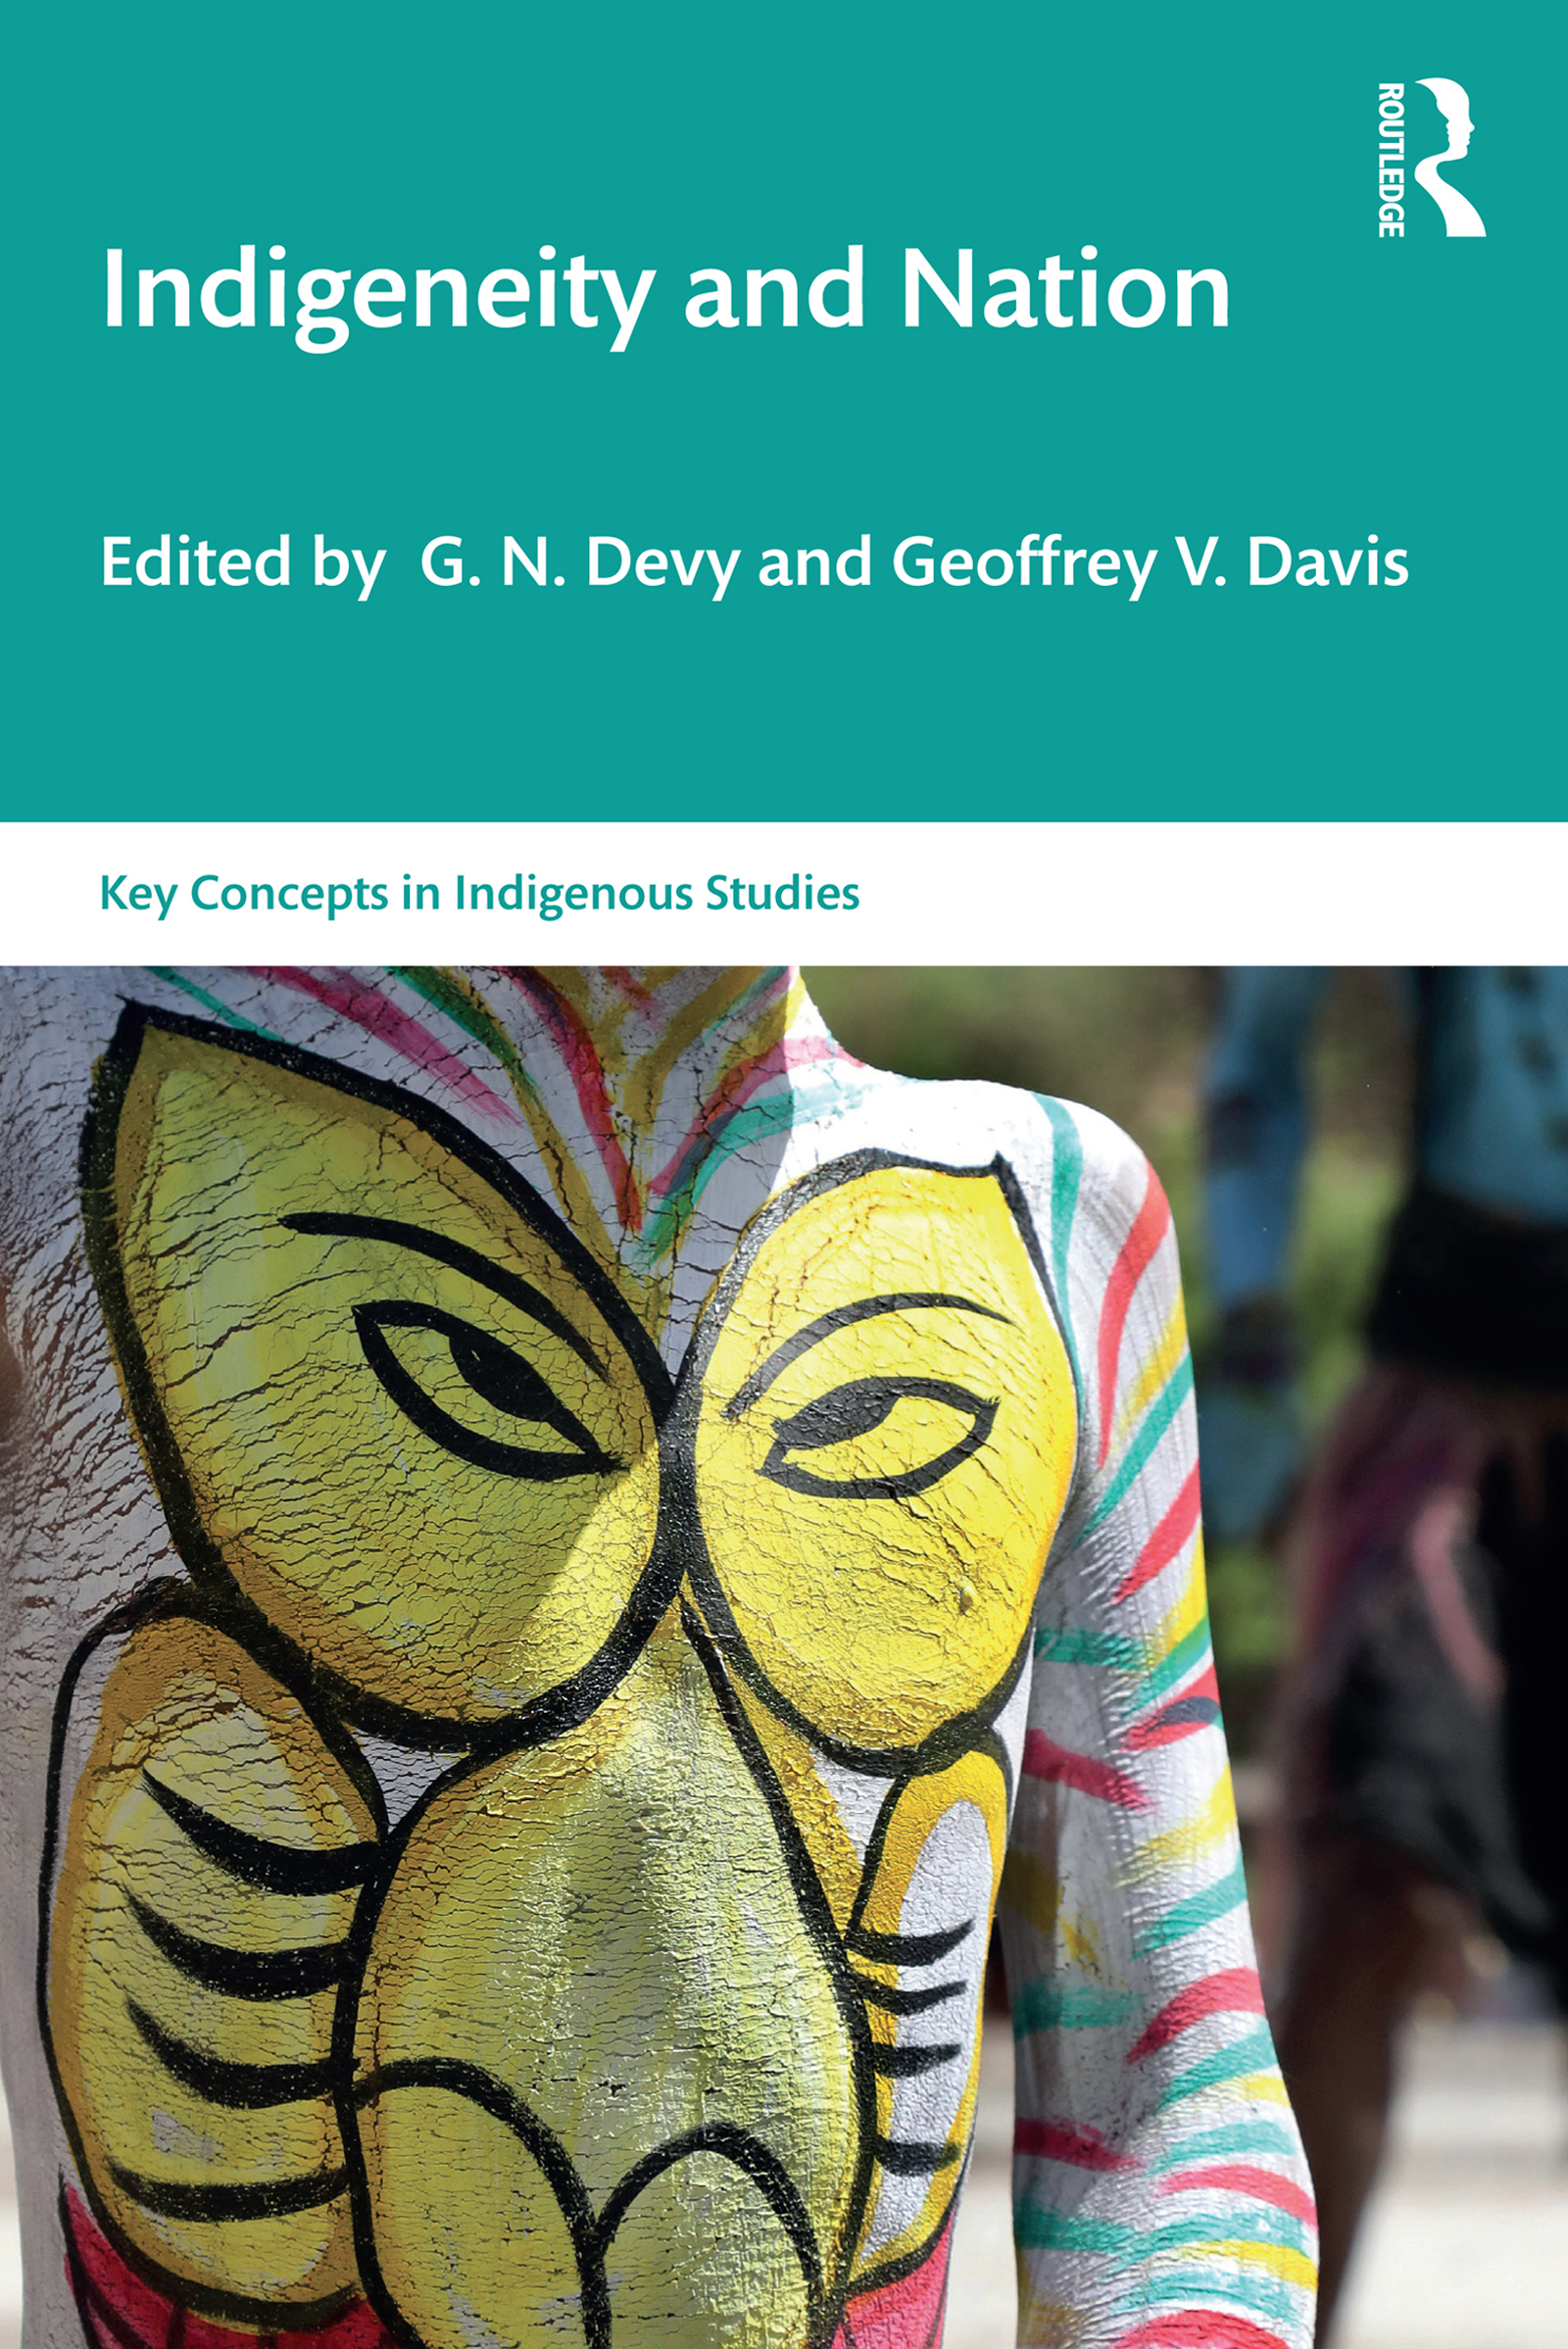 Indigenous peoples and nation interface in India